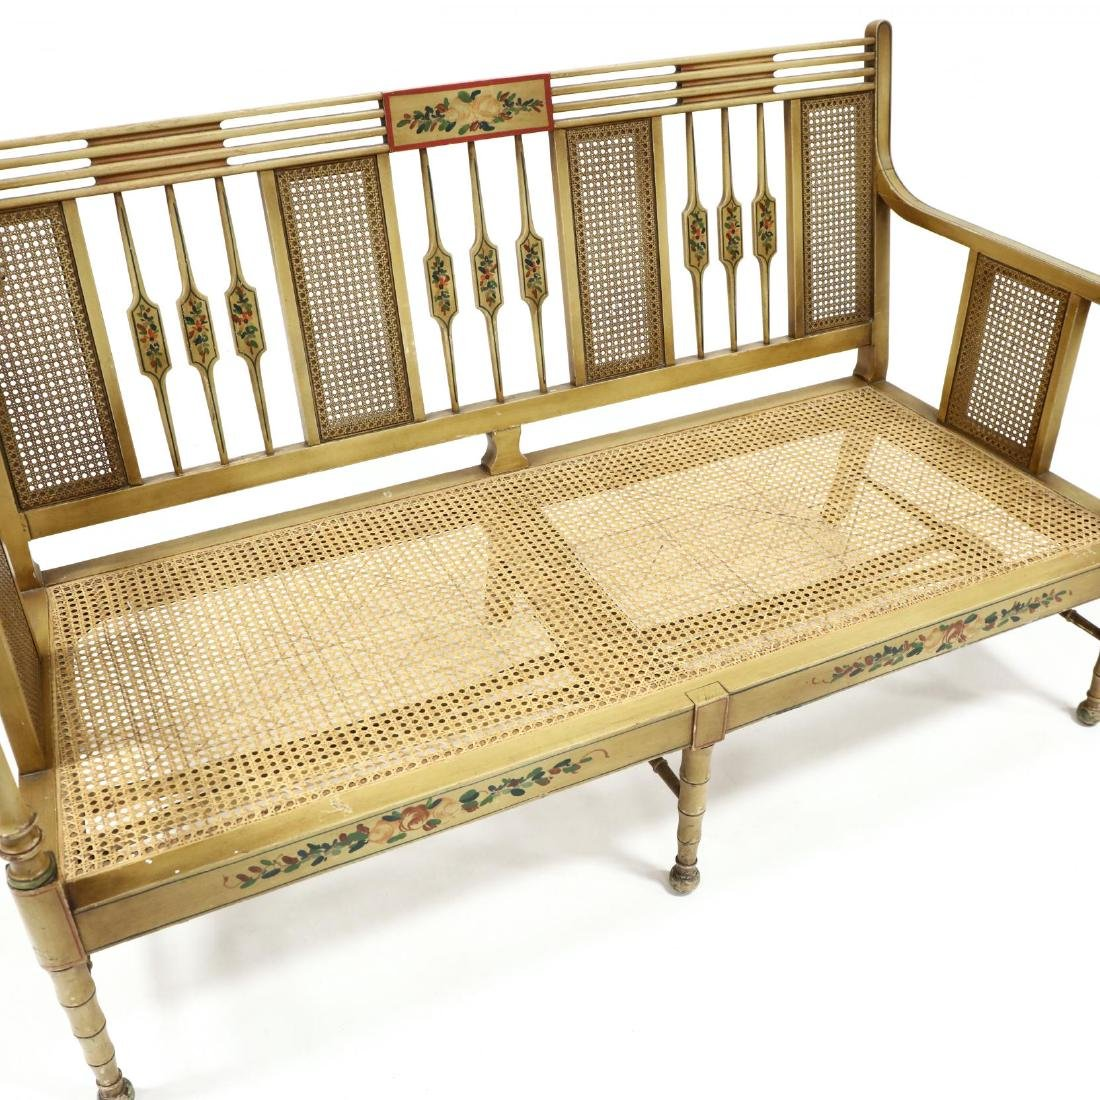 Elgin A. Simonds Furniture Co., Vintage Painted Caned - 2